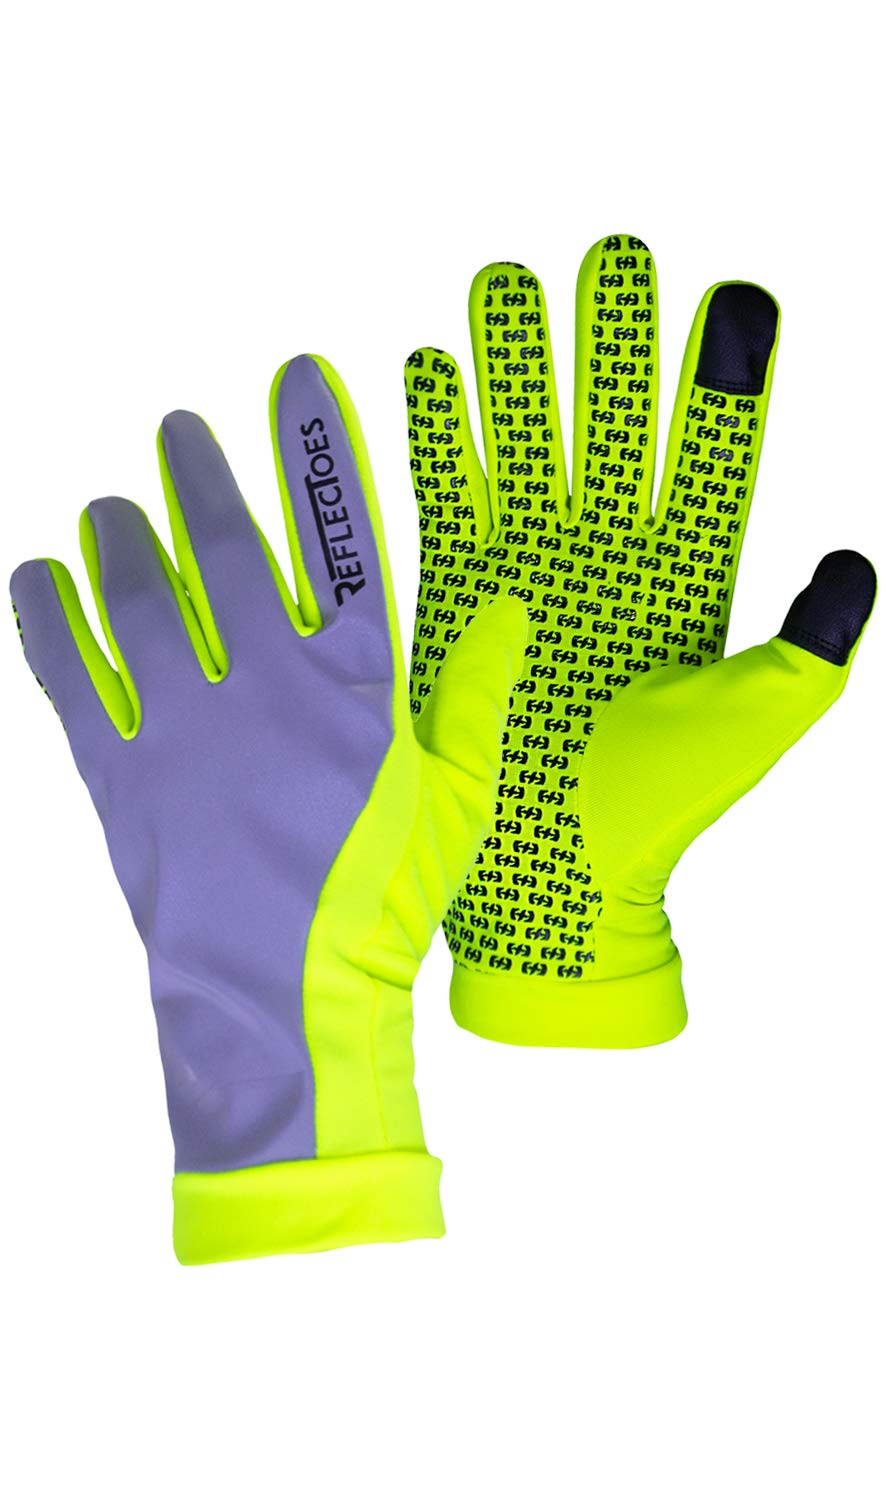 ReflecToes Reflective Running Gloves Lightweight Hi Vis Winter Running Gear Cold Weather Jogging at Night